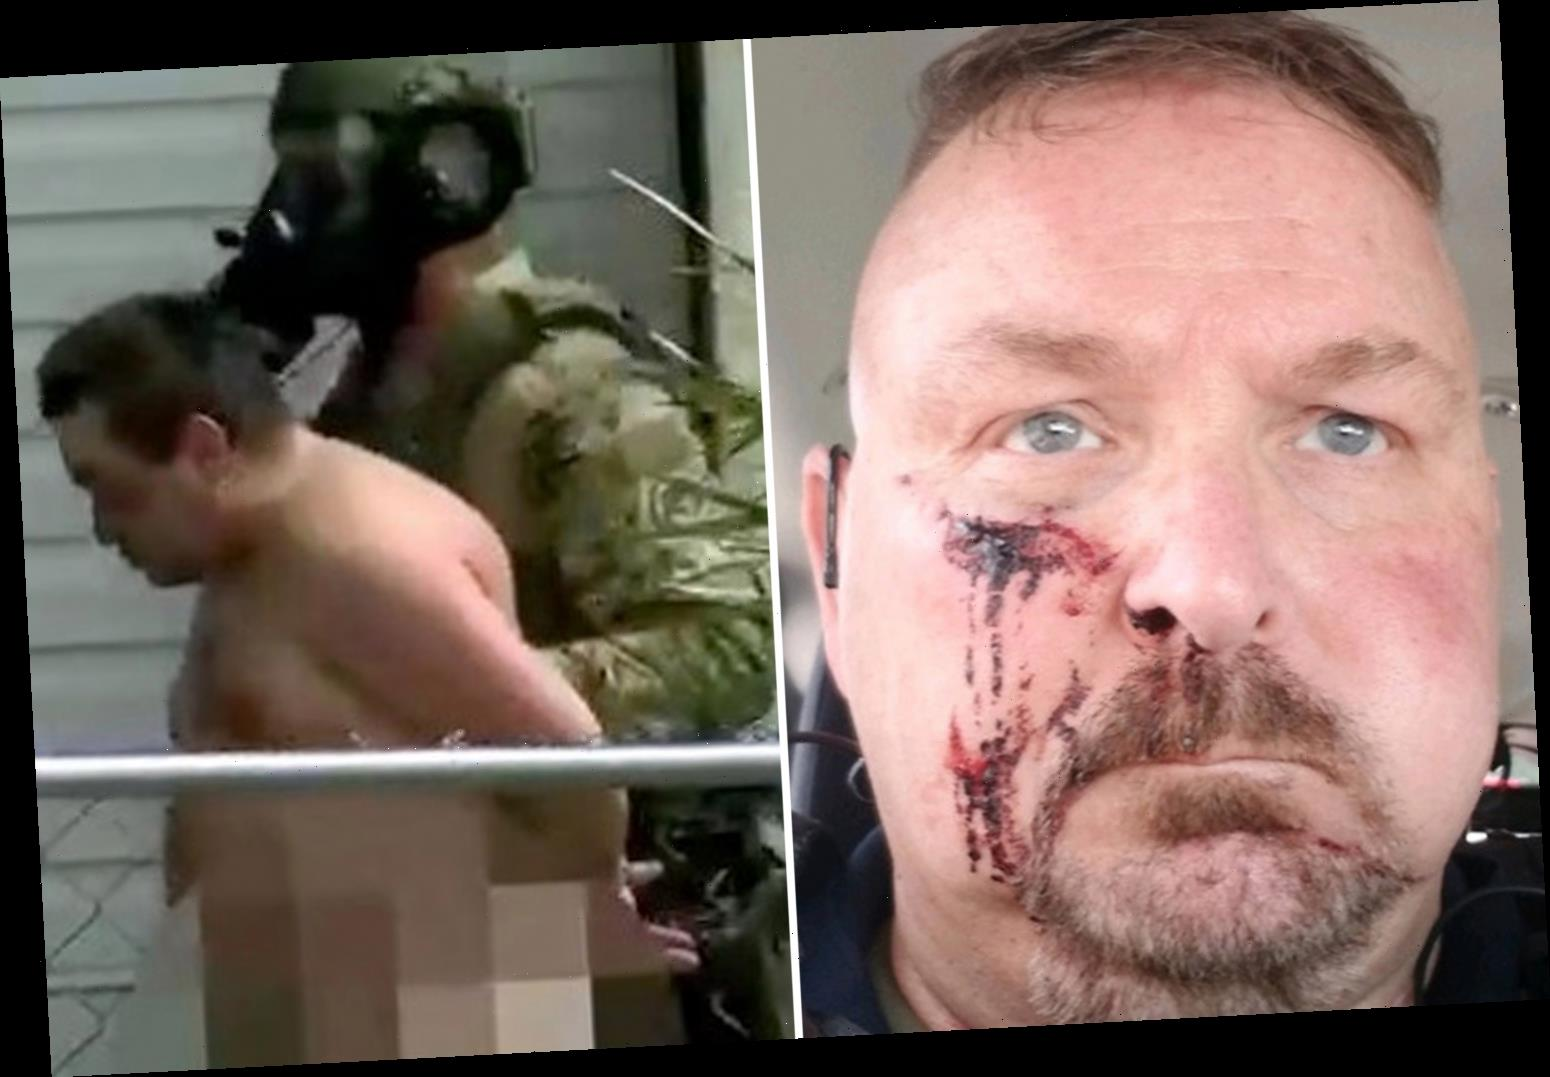 """Police chief 'stabbed in the face and told he's """"going to die today"""" after suspect knocked on his door'"""